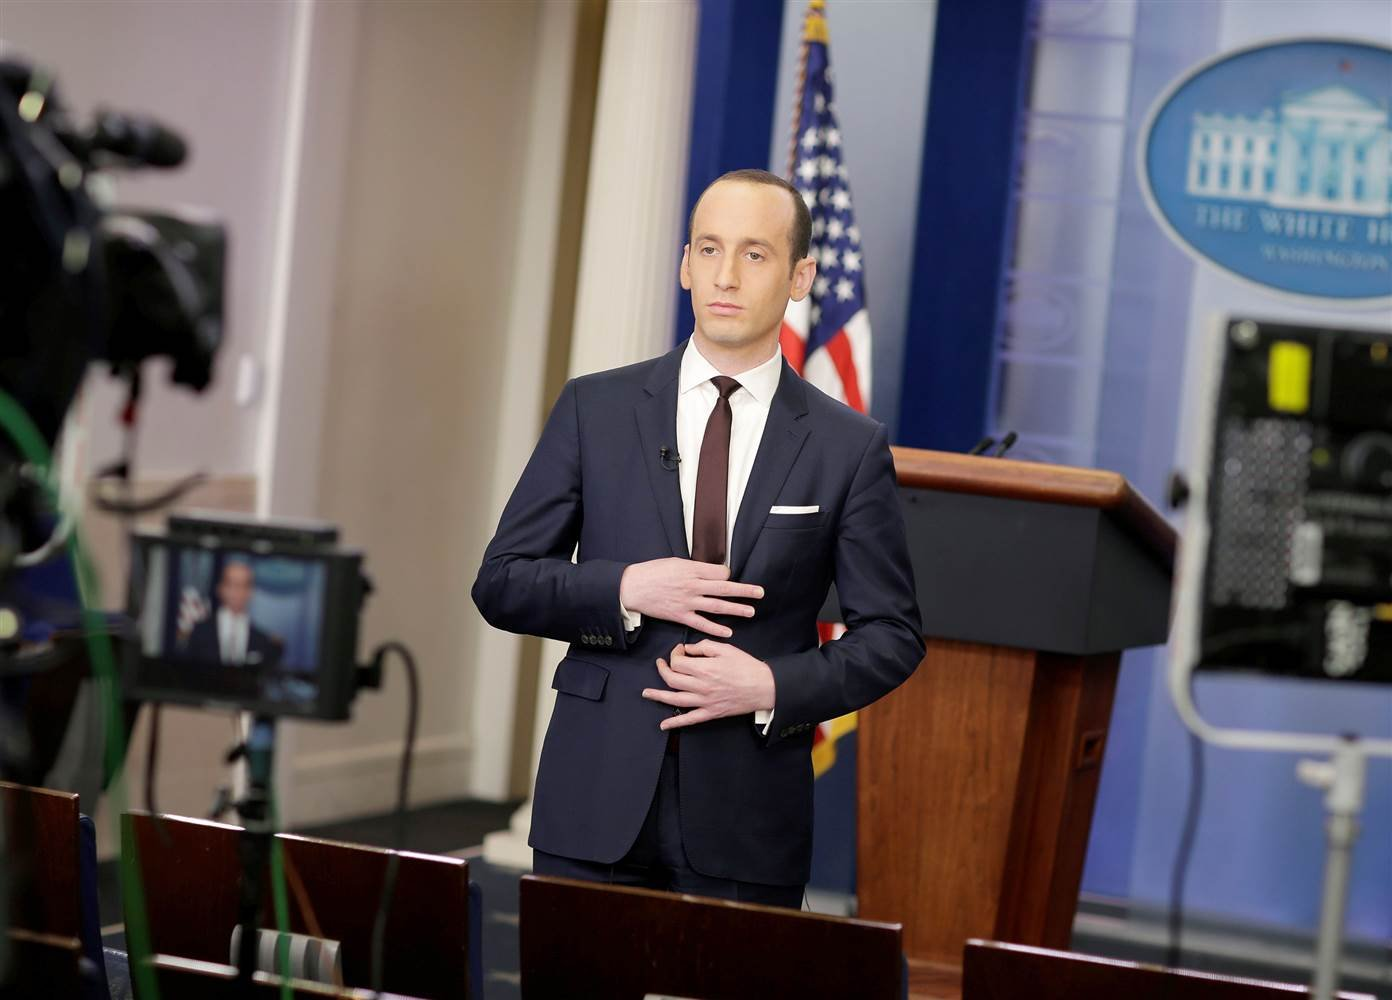 Jake Tapper cuts off Duke alum Stephen Miller in interview